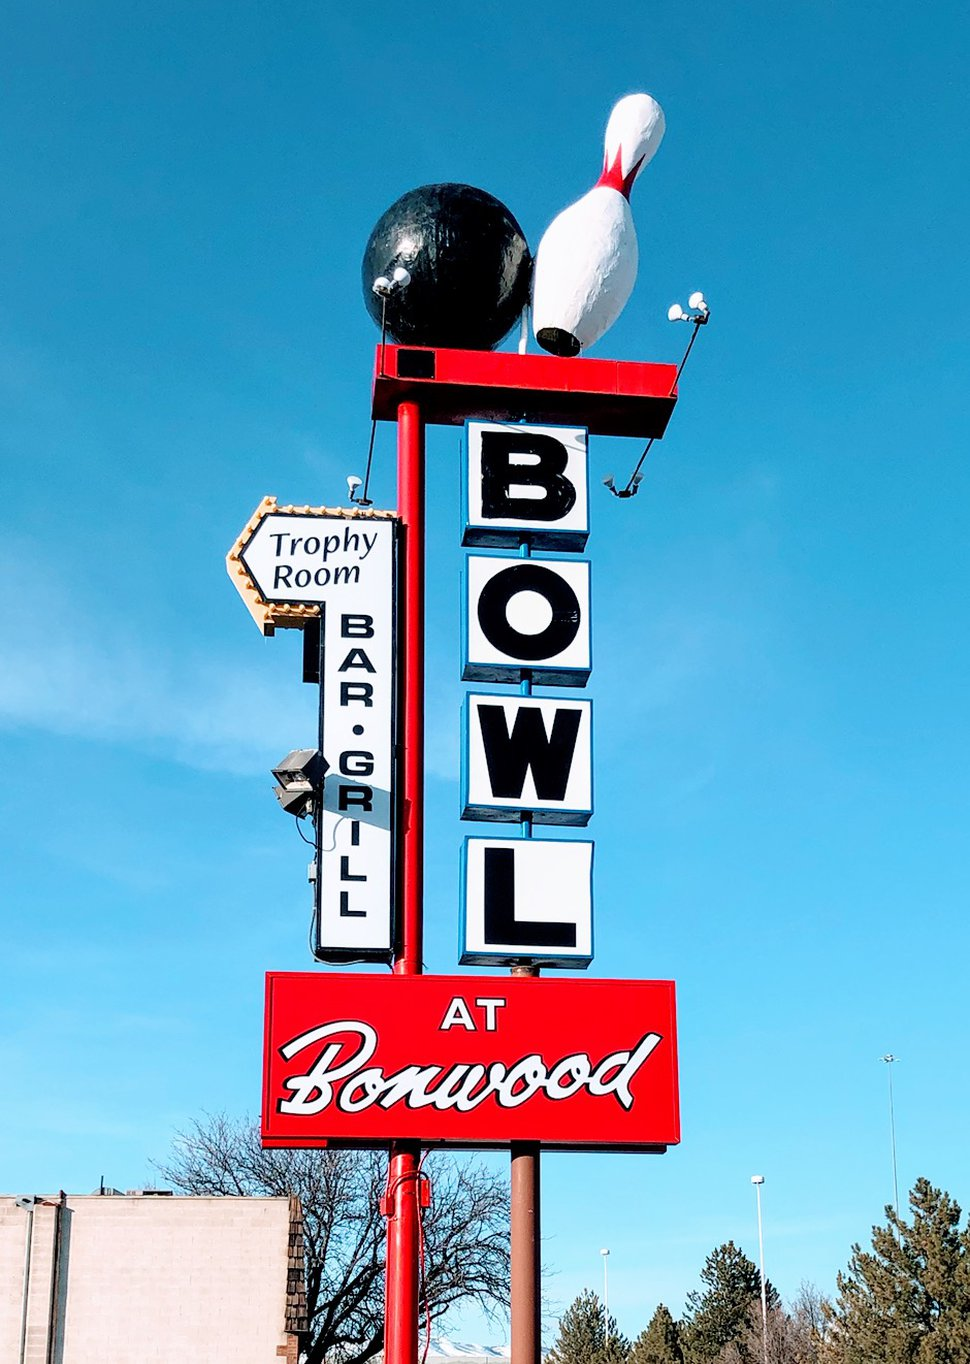 (Photo courtesy of Bonwod Bowl) The owners of the Bonwood Bowl have restored the iconic sign that was damaged last October, when the base of the sign was hit by a drunken driver.